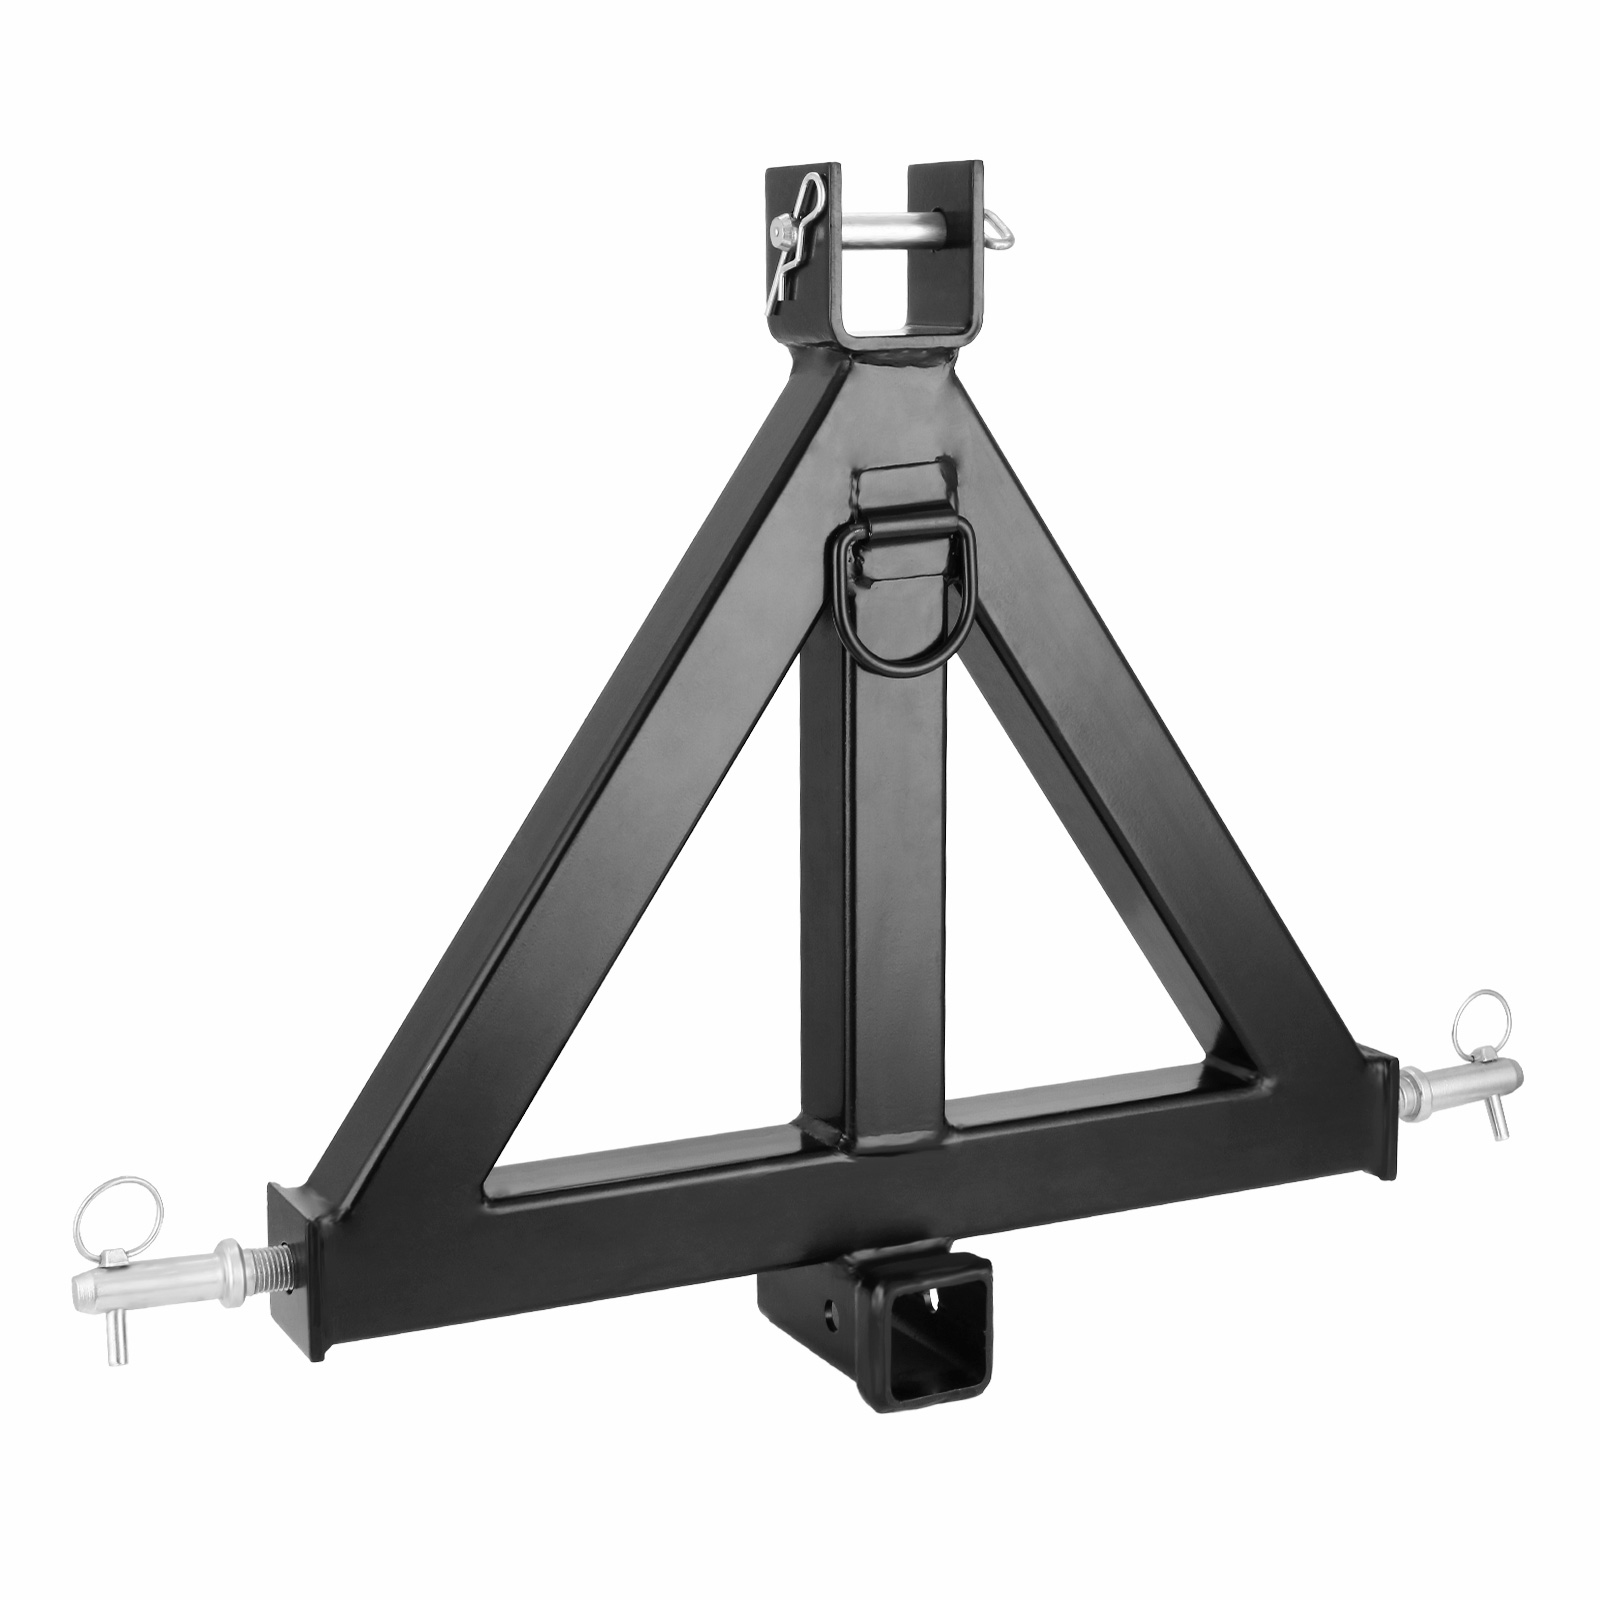 VEVOR 3 Point Trailer Hitch Heavy Duty 2'' Receiver Hitch...